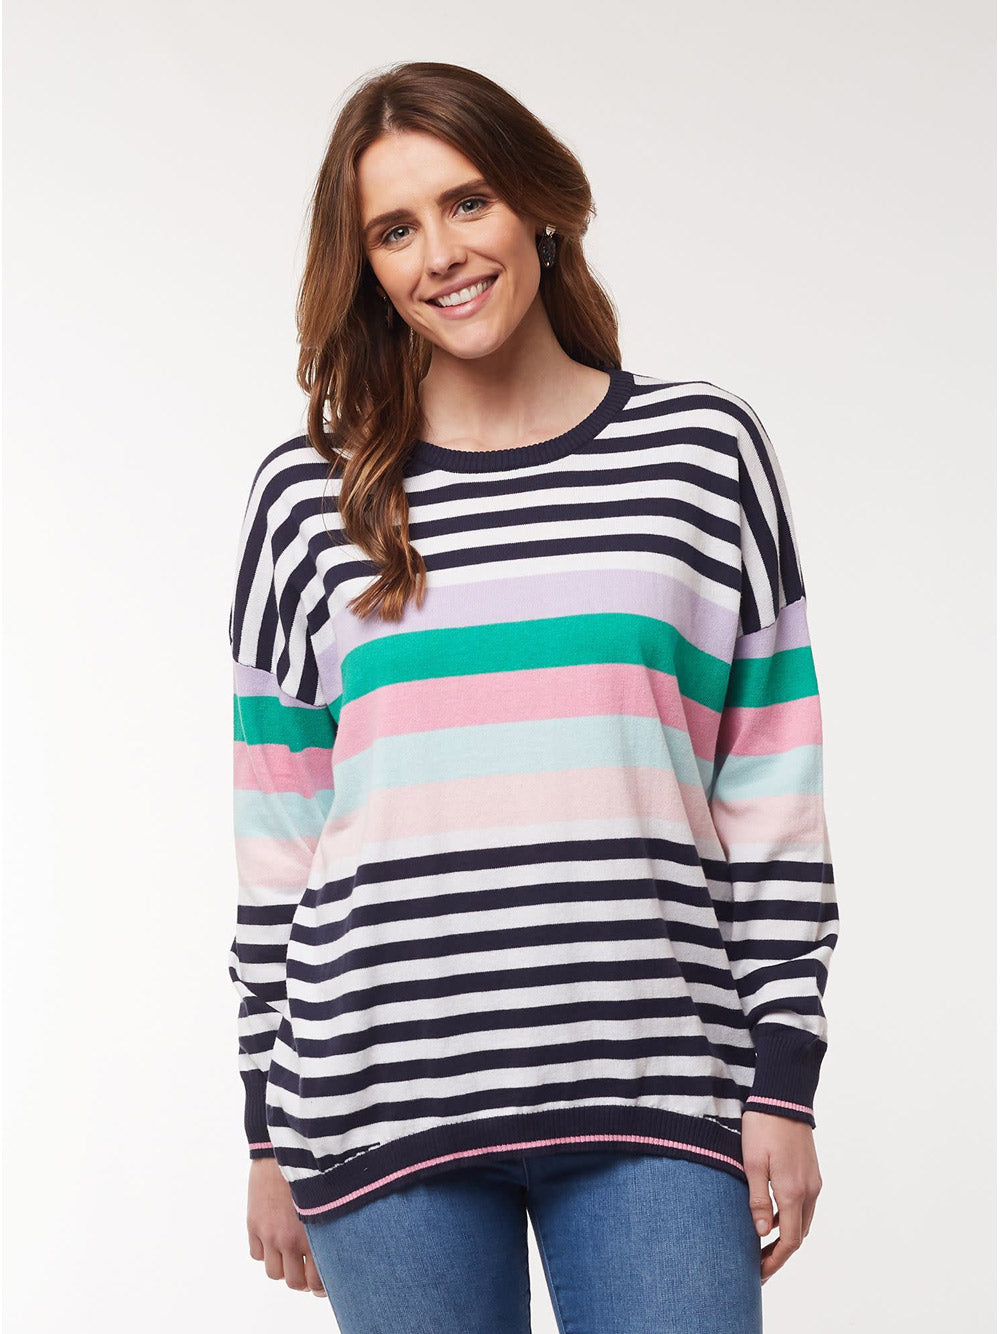 ELM Lifestyle Passion Stripe Knit